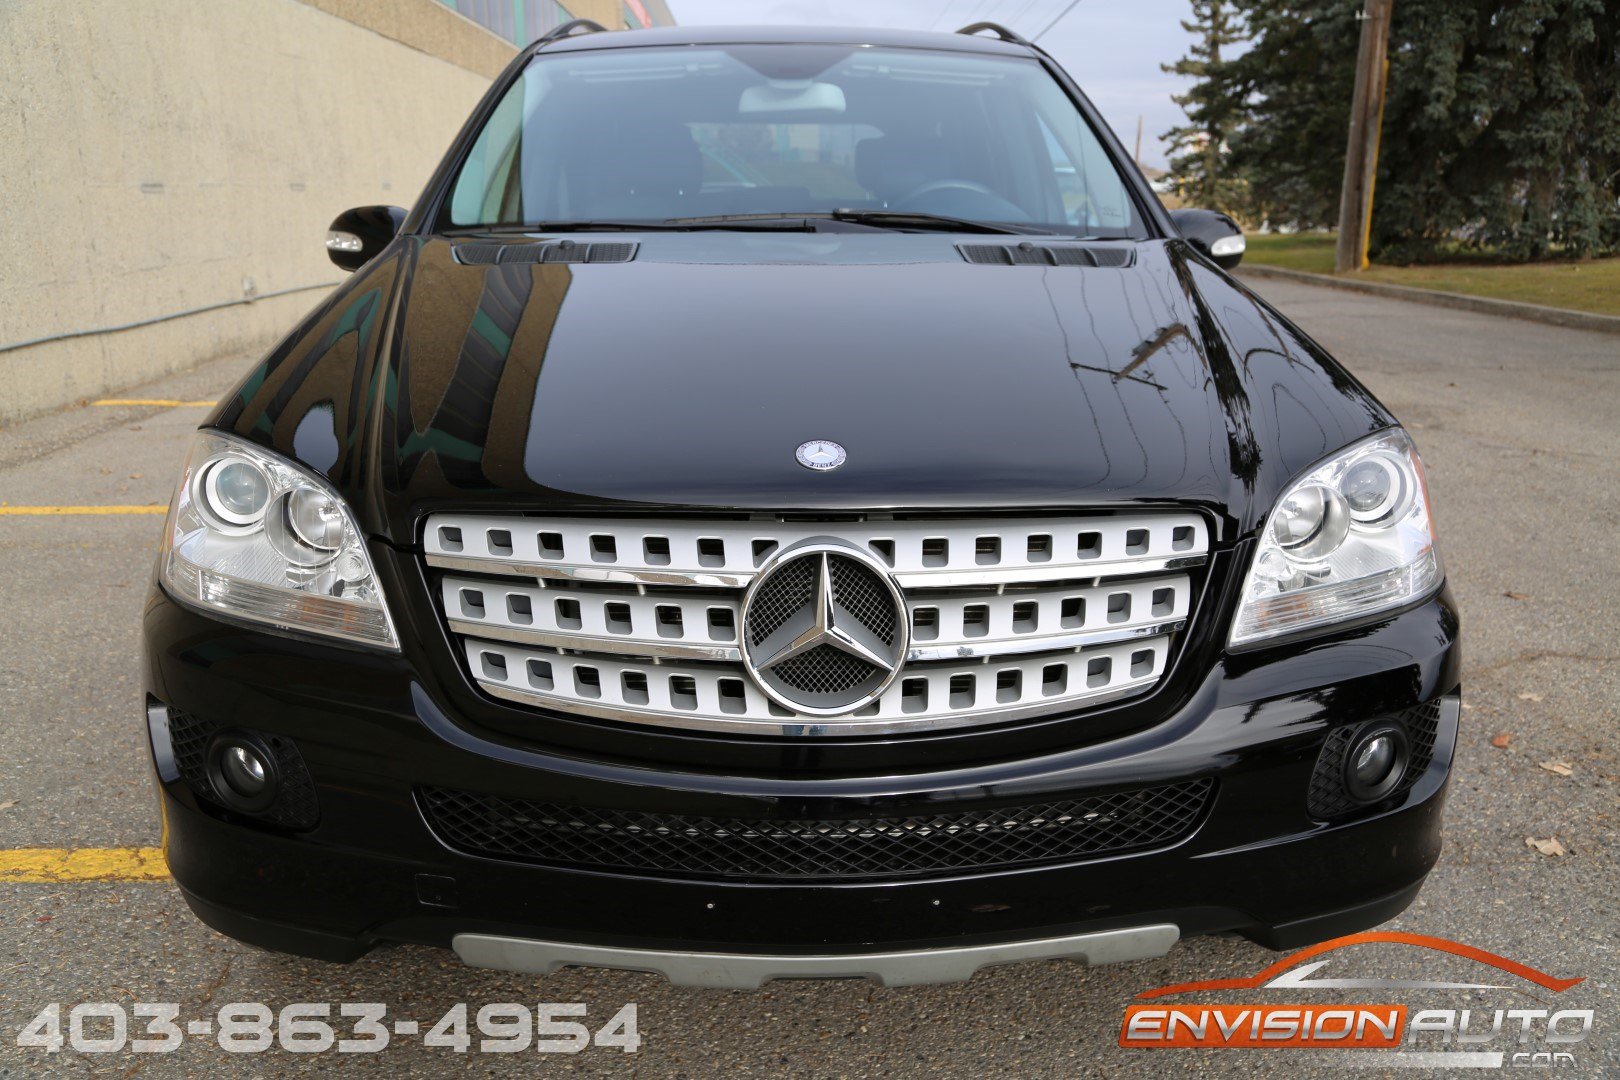 2008 mercedes benz ml350 4matic envision auto for 2008 mercedes benz ml350